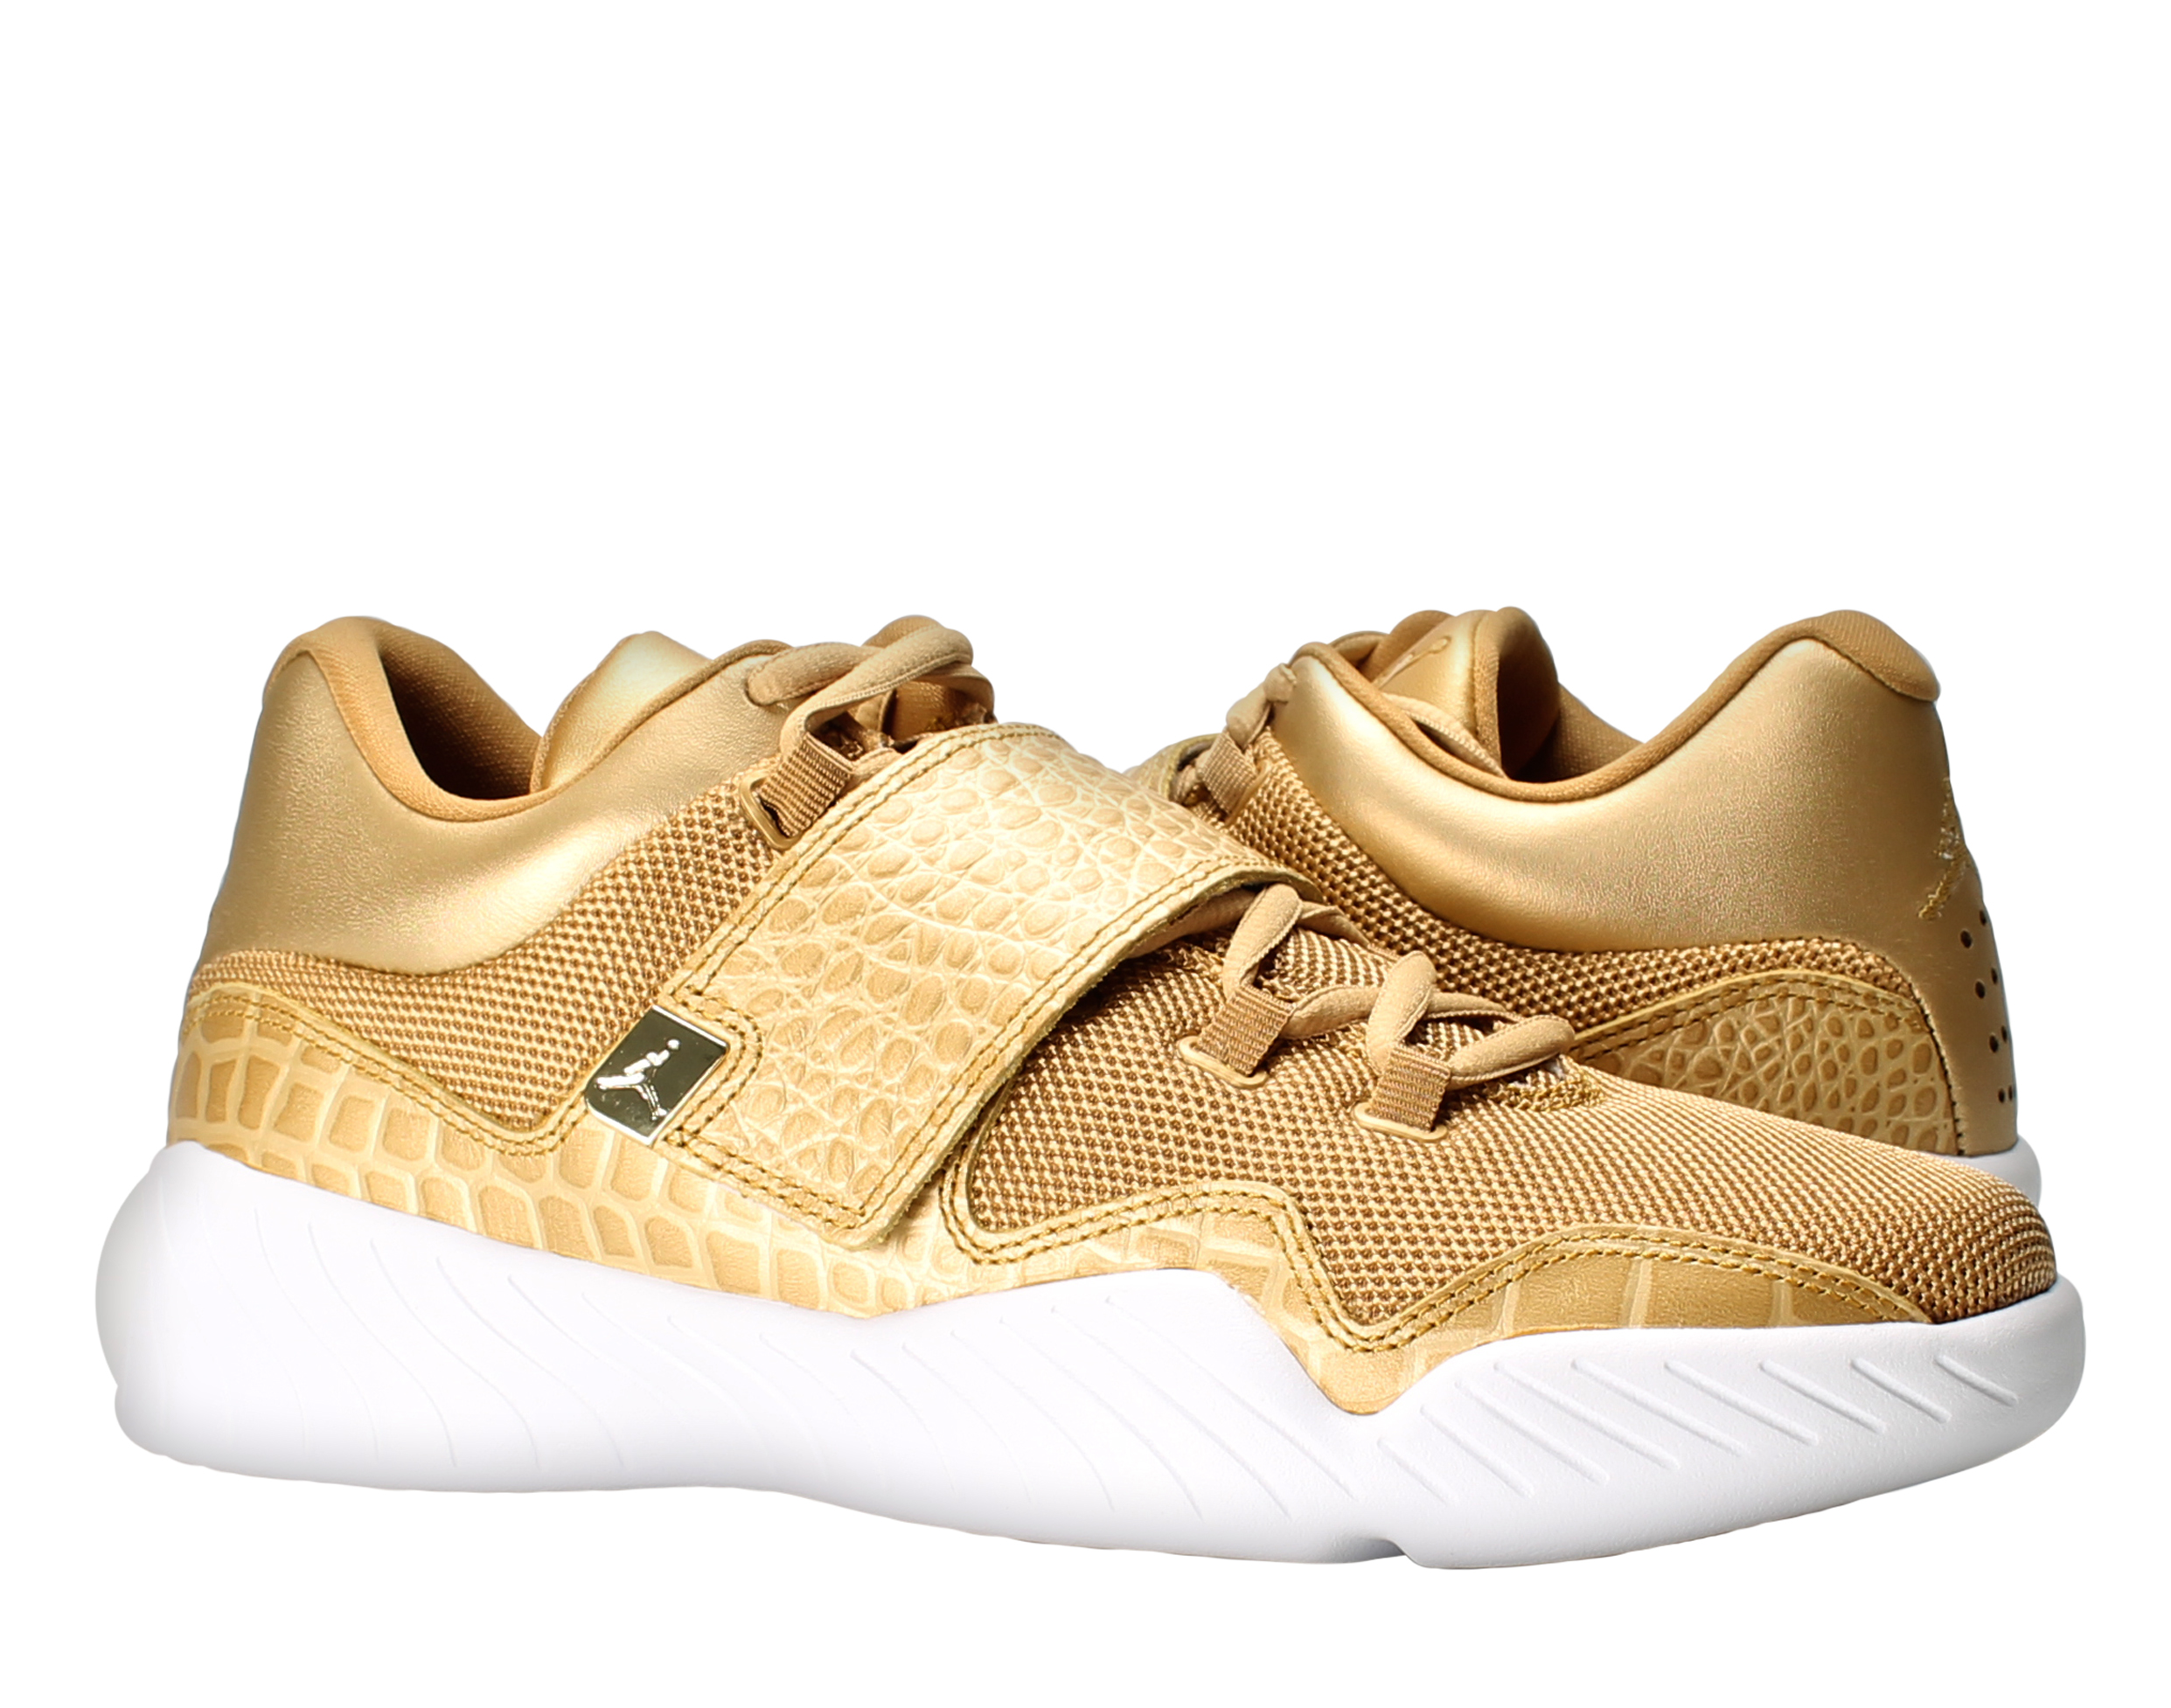 Nike Air Jordan J23 Metallic Gold Men's Cross Training Shoes 854557-700 Size 8.5 - Walmart.com